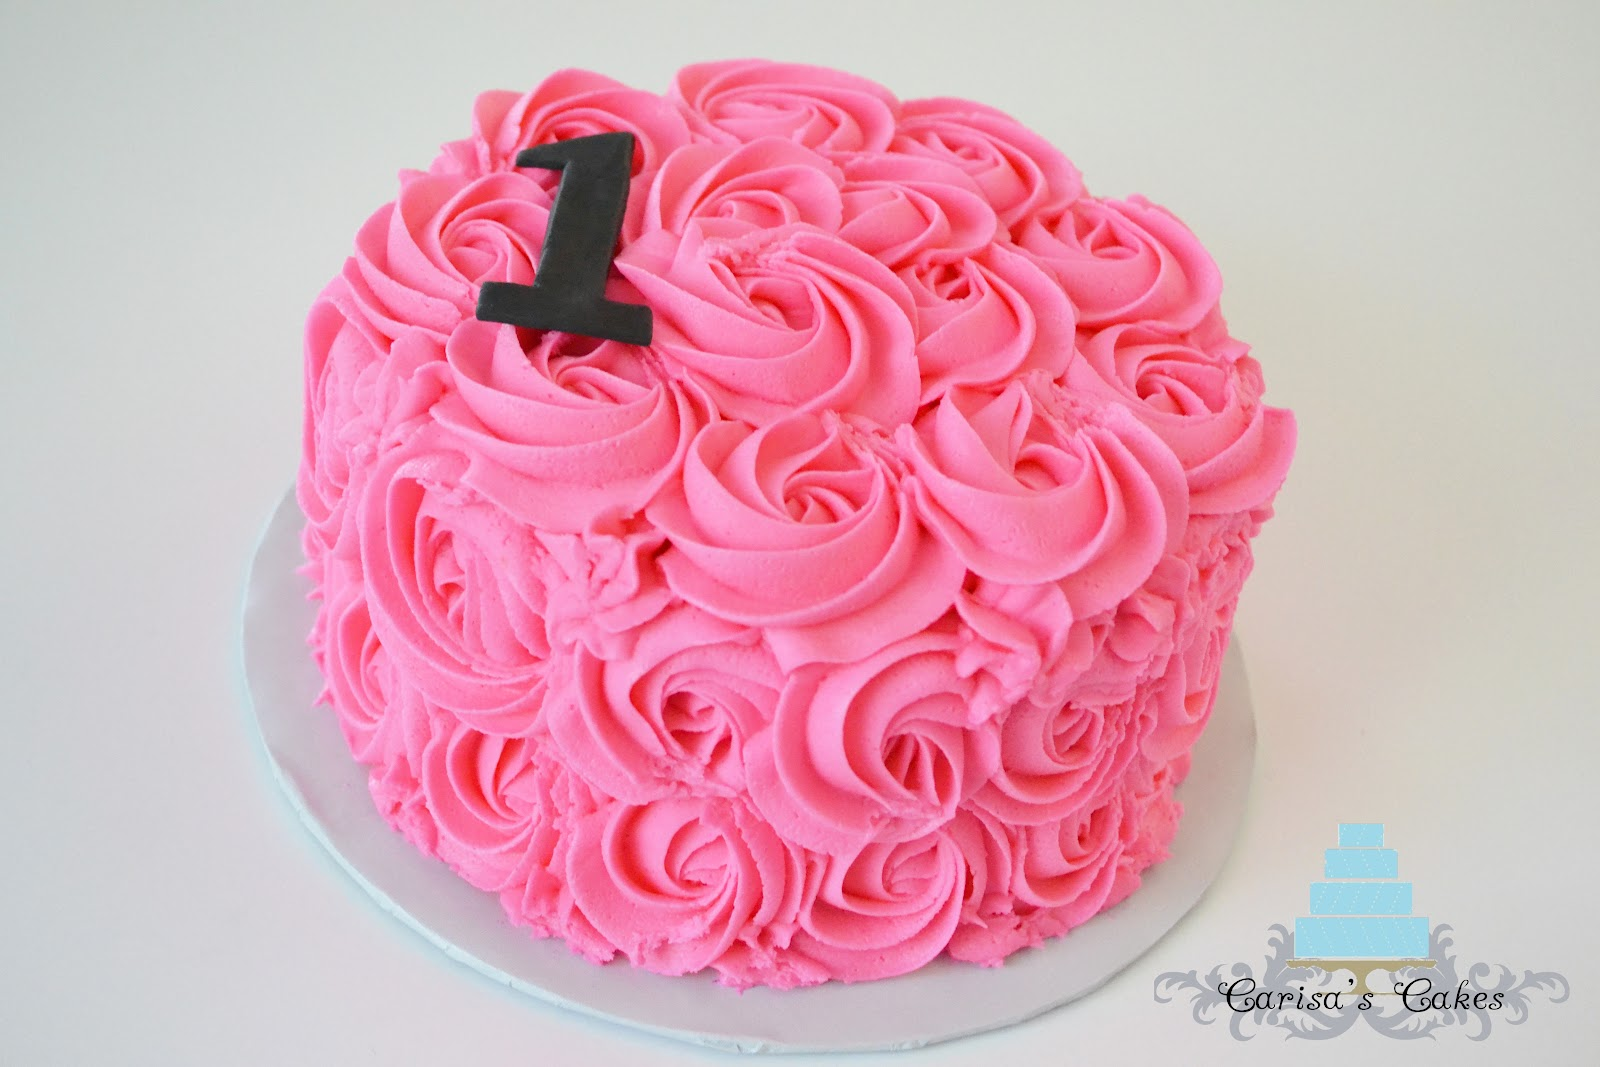 Birthday Cake Ideas In Rose Swirl myideasbedroom.com